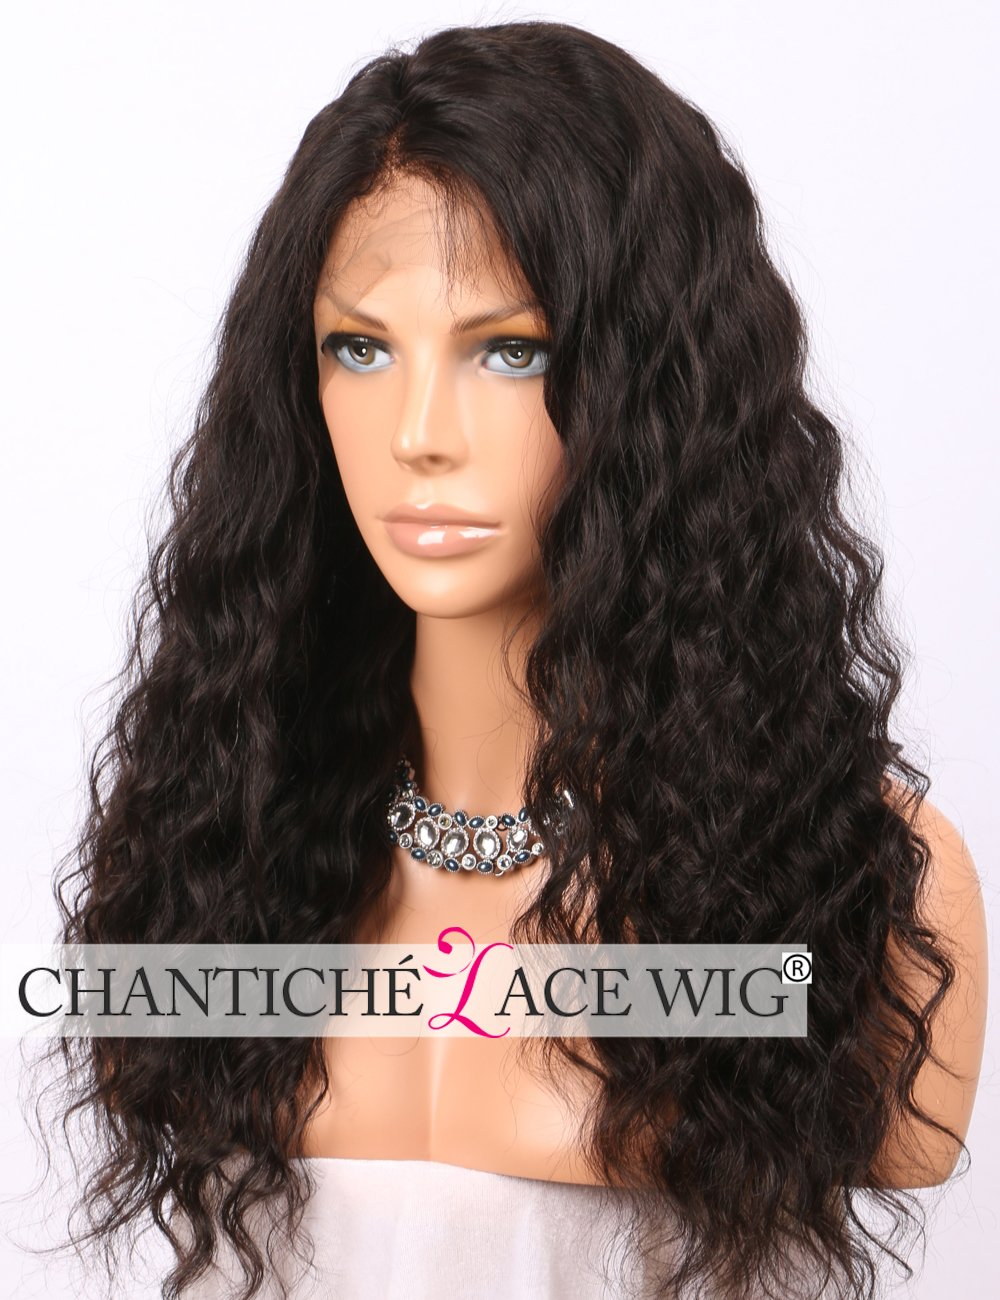 Chantiche 360 Lace Wig with Baby Hair, 360 Lace Frontal Wig Pre Plucked Brazilian Curly Human Hair Wigs for Black Women Natural Brown 18inches